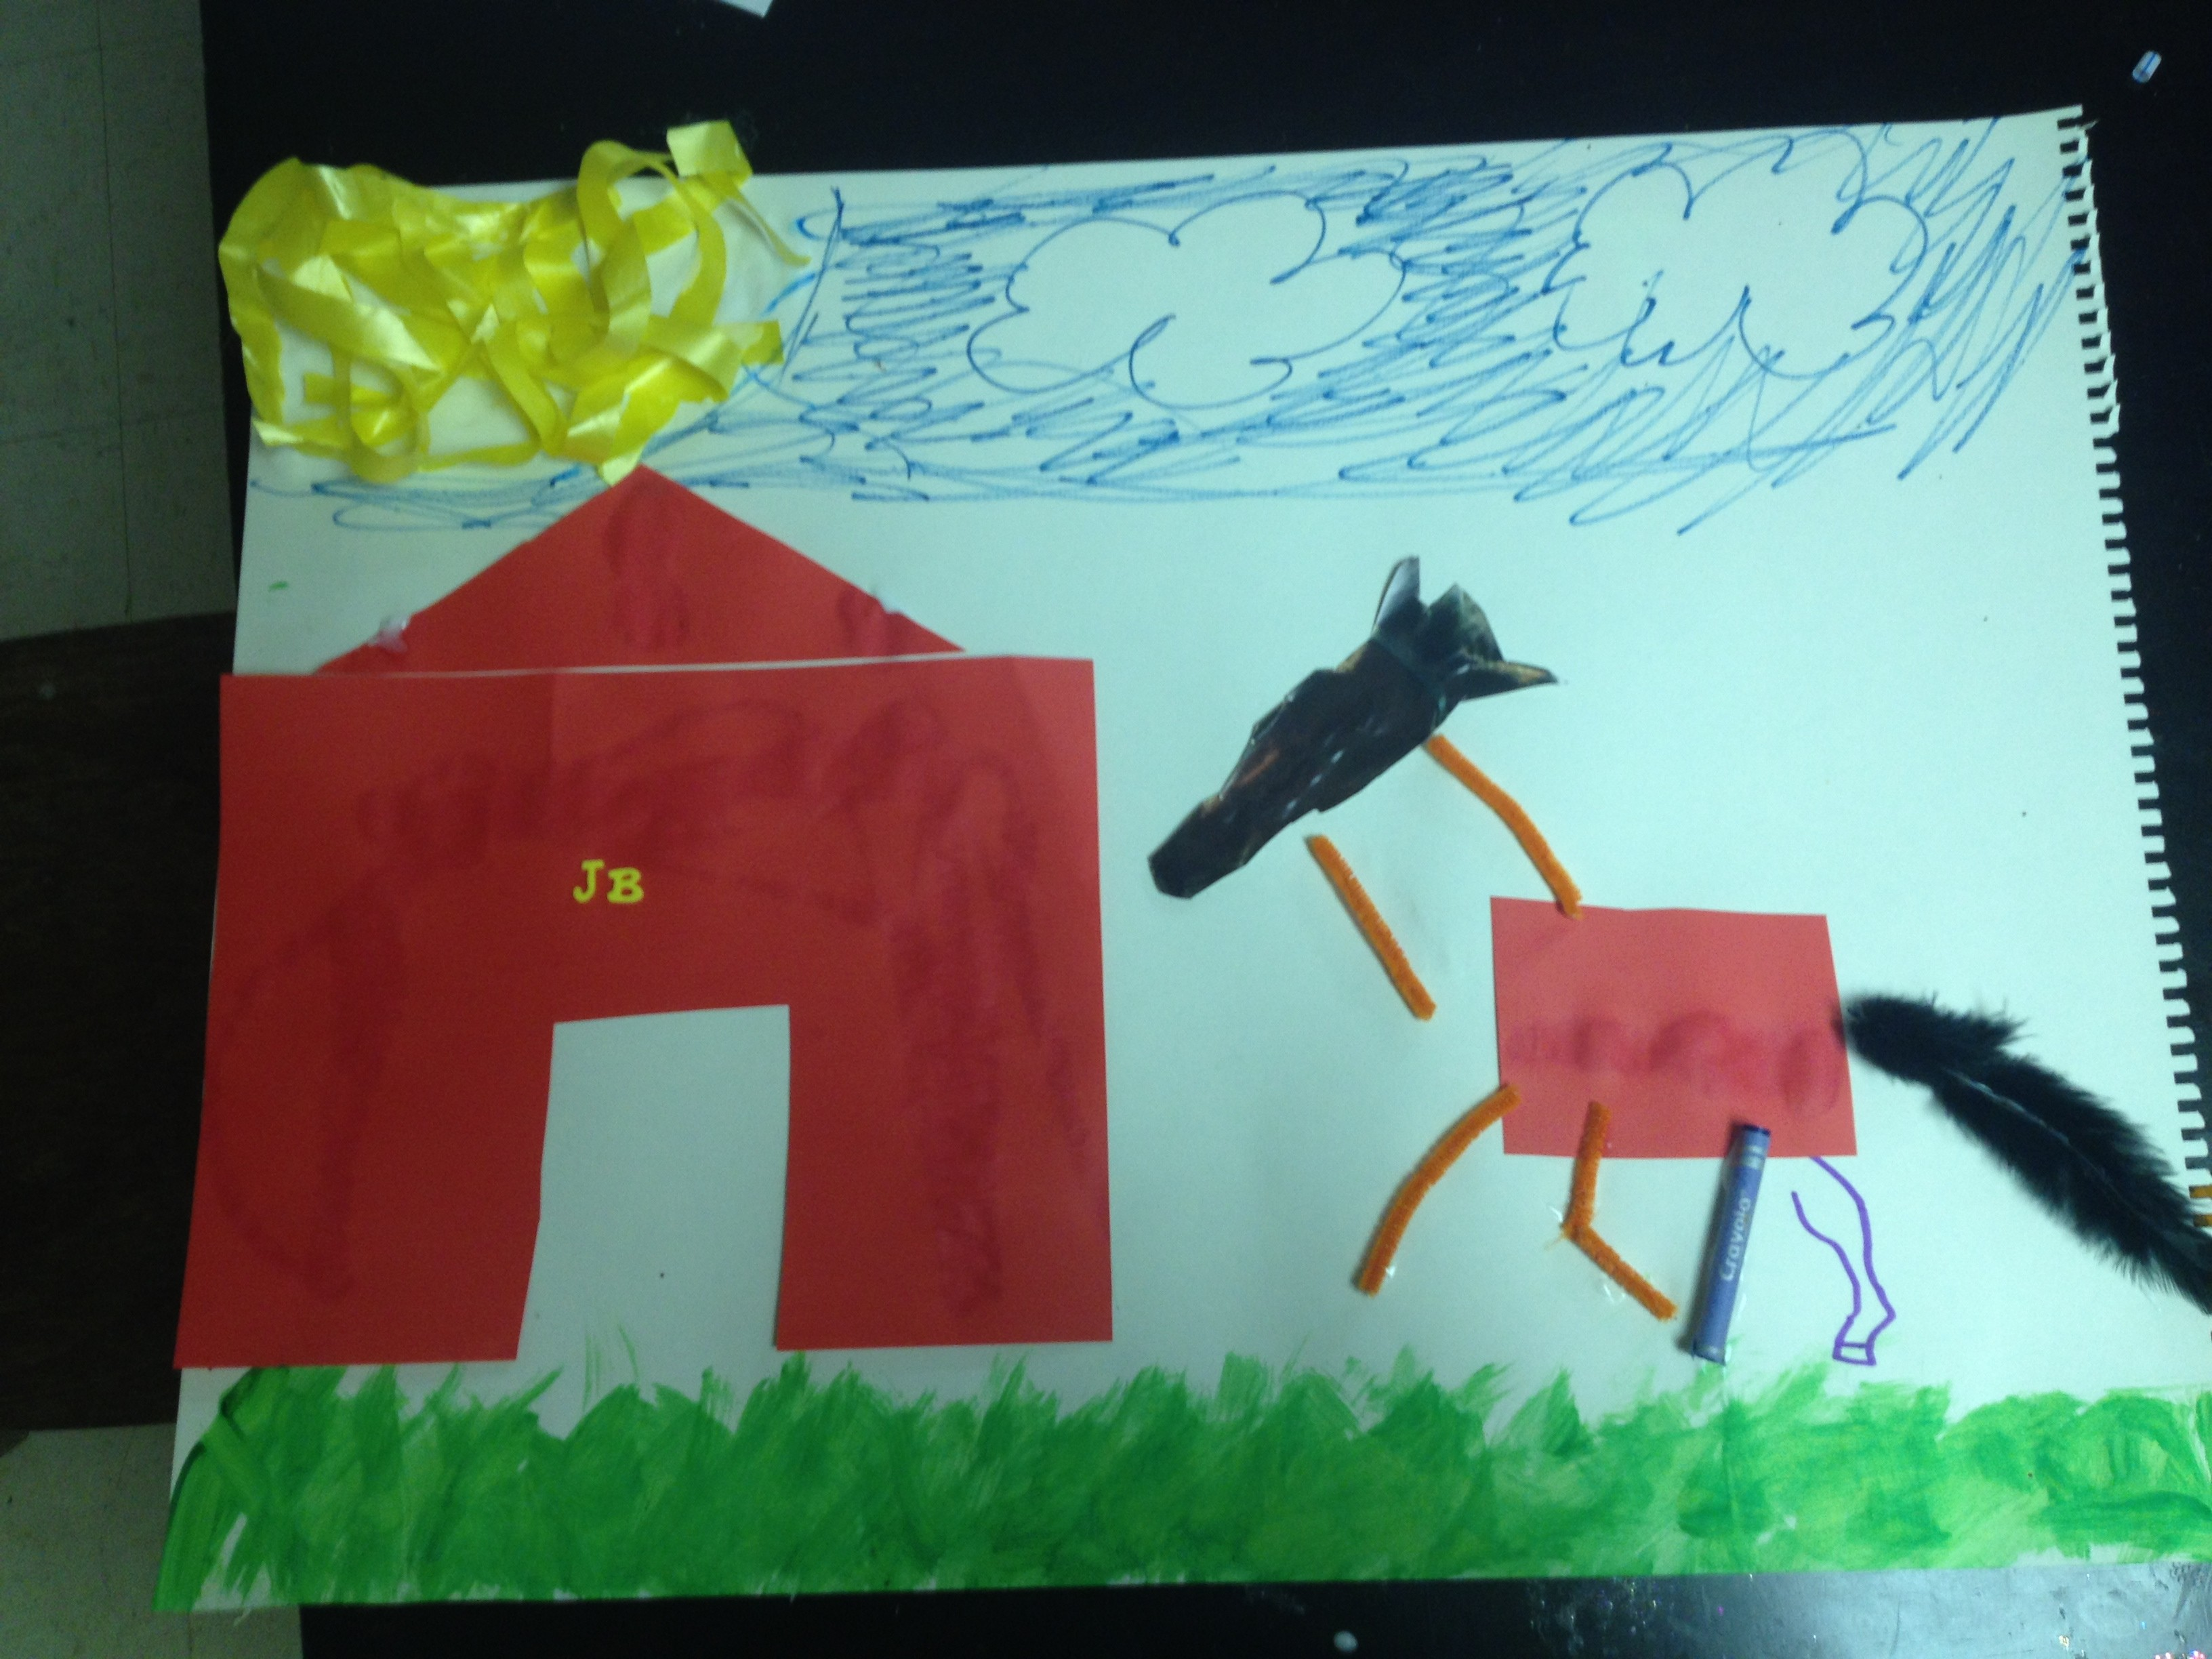 This HALO youth used his items to create a horse and barn.